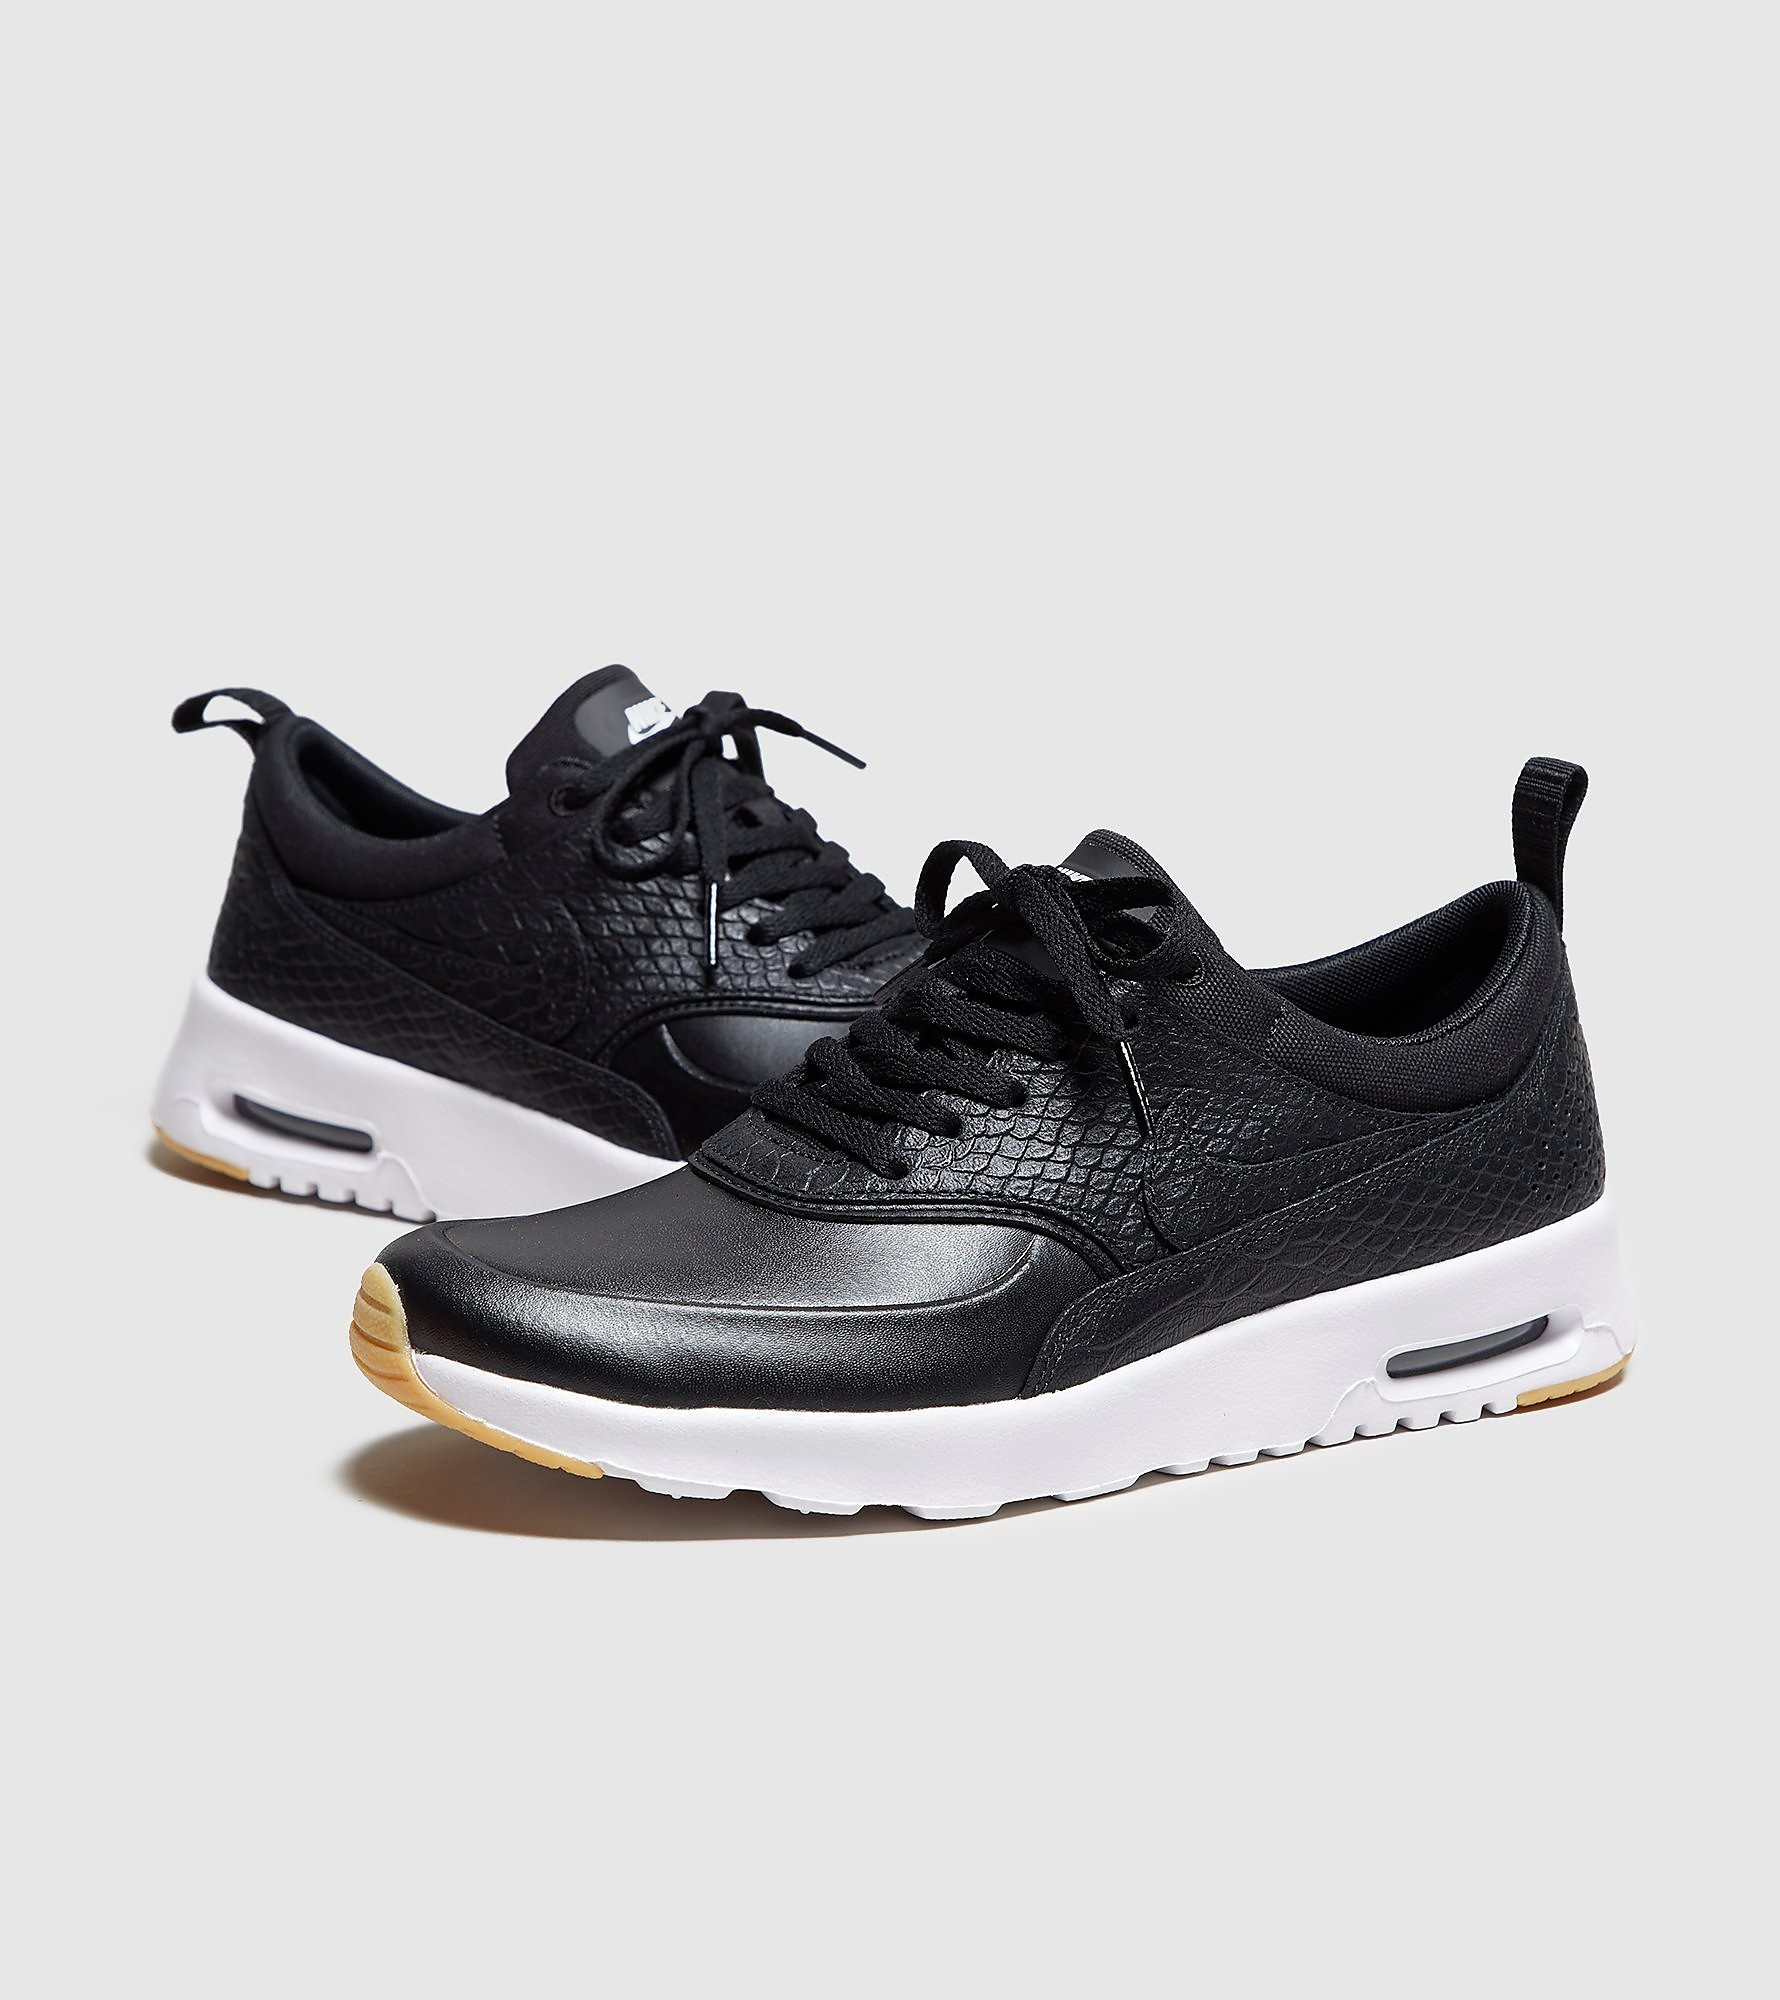 Nike Air Max Thea Women's